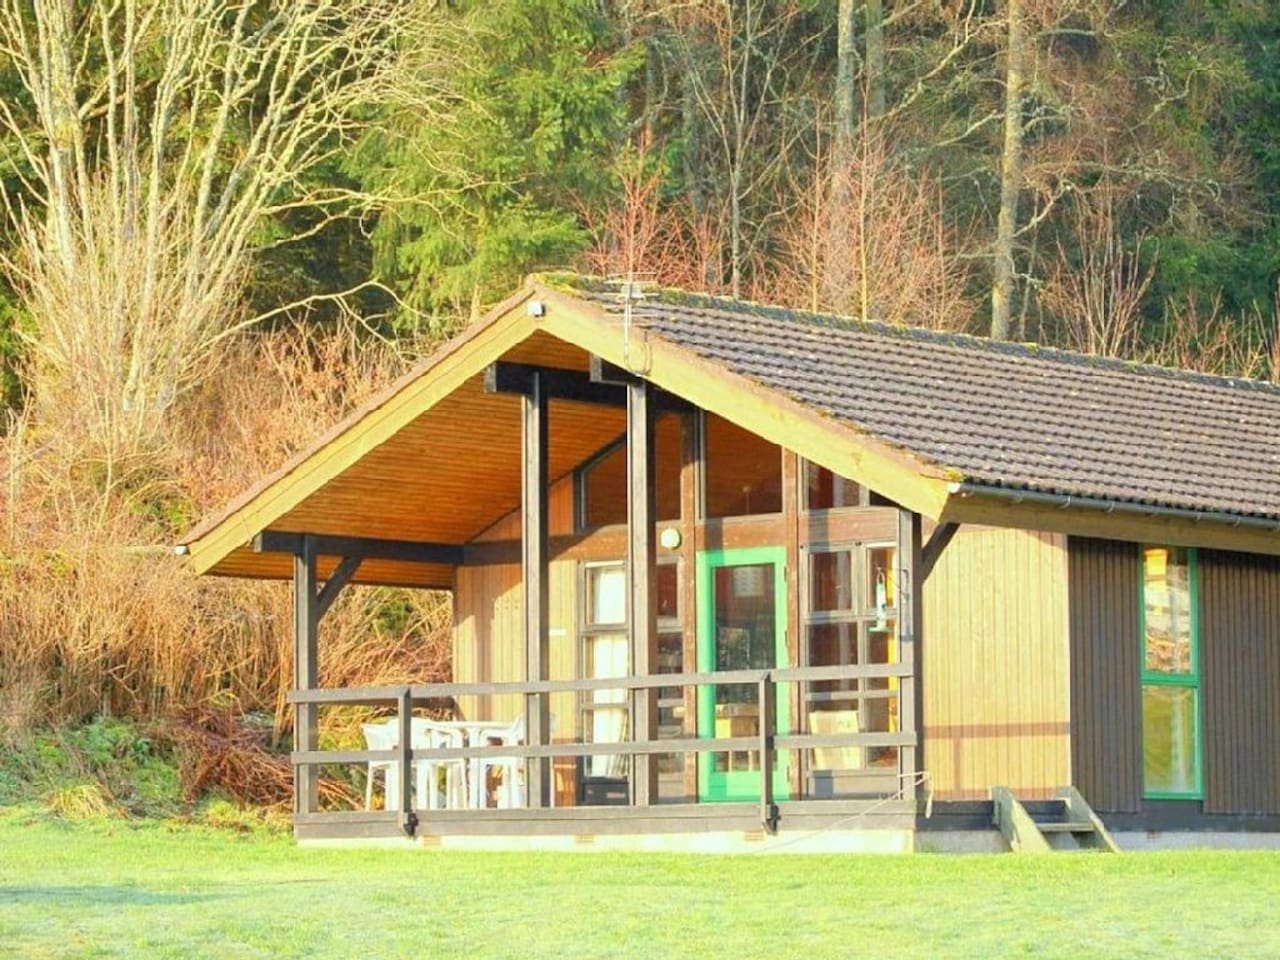 Firbush Lodge overlooking Loch Tay with mountain and woodland views beyond